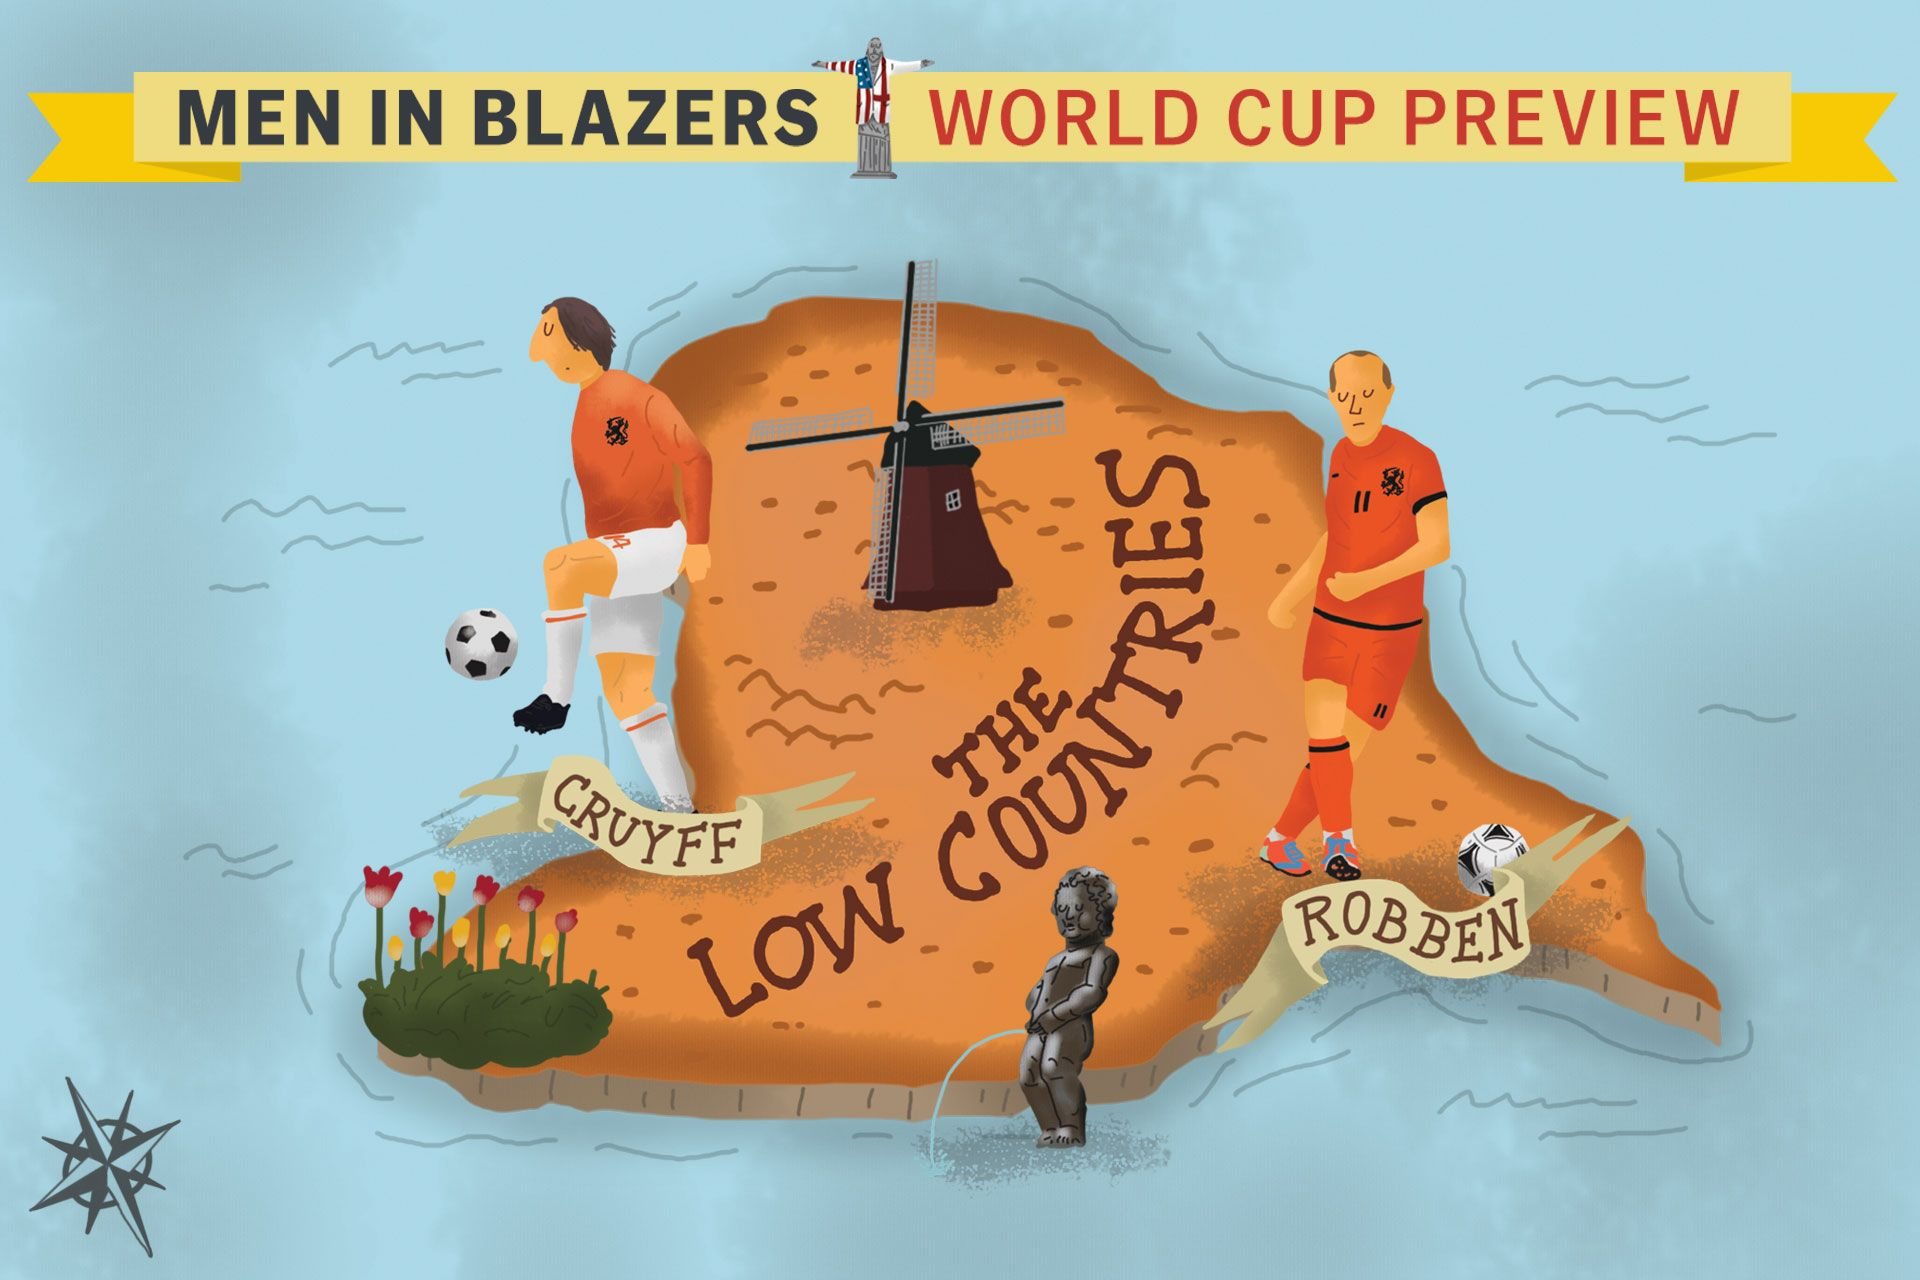 low-countries-world-cup-sl-video.jpg (1920×1280)